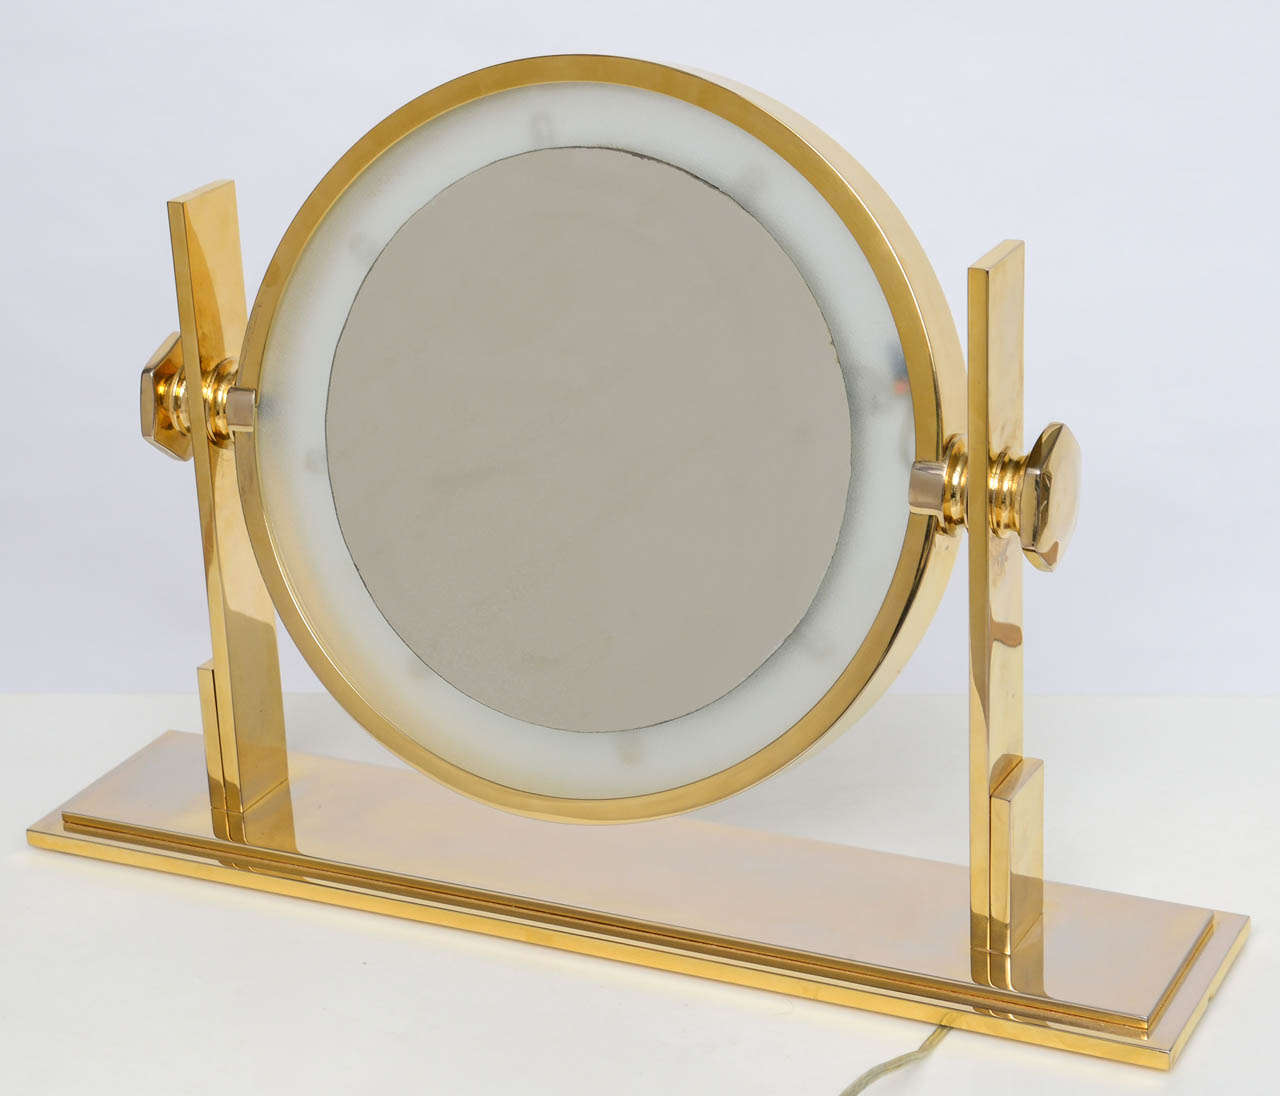 Karl springer lighted table top vanity mirror at 1stdibs for Vanity table with lighted mirror and bench